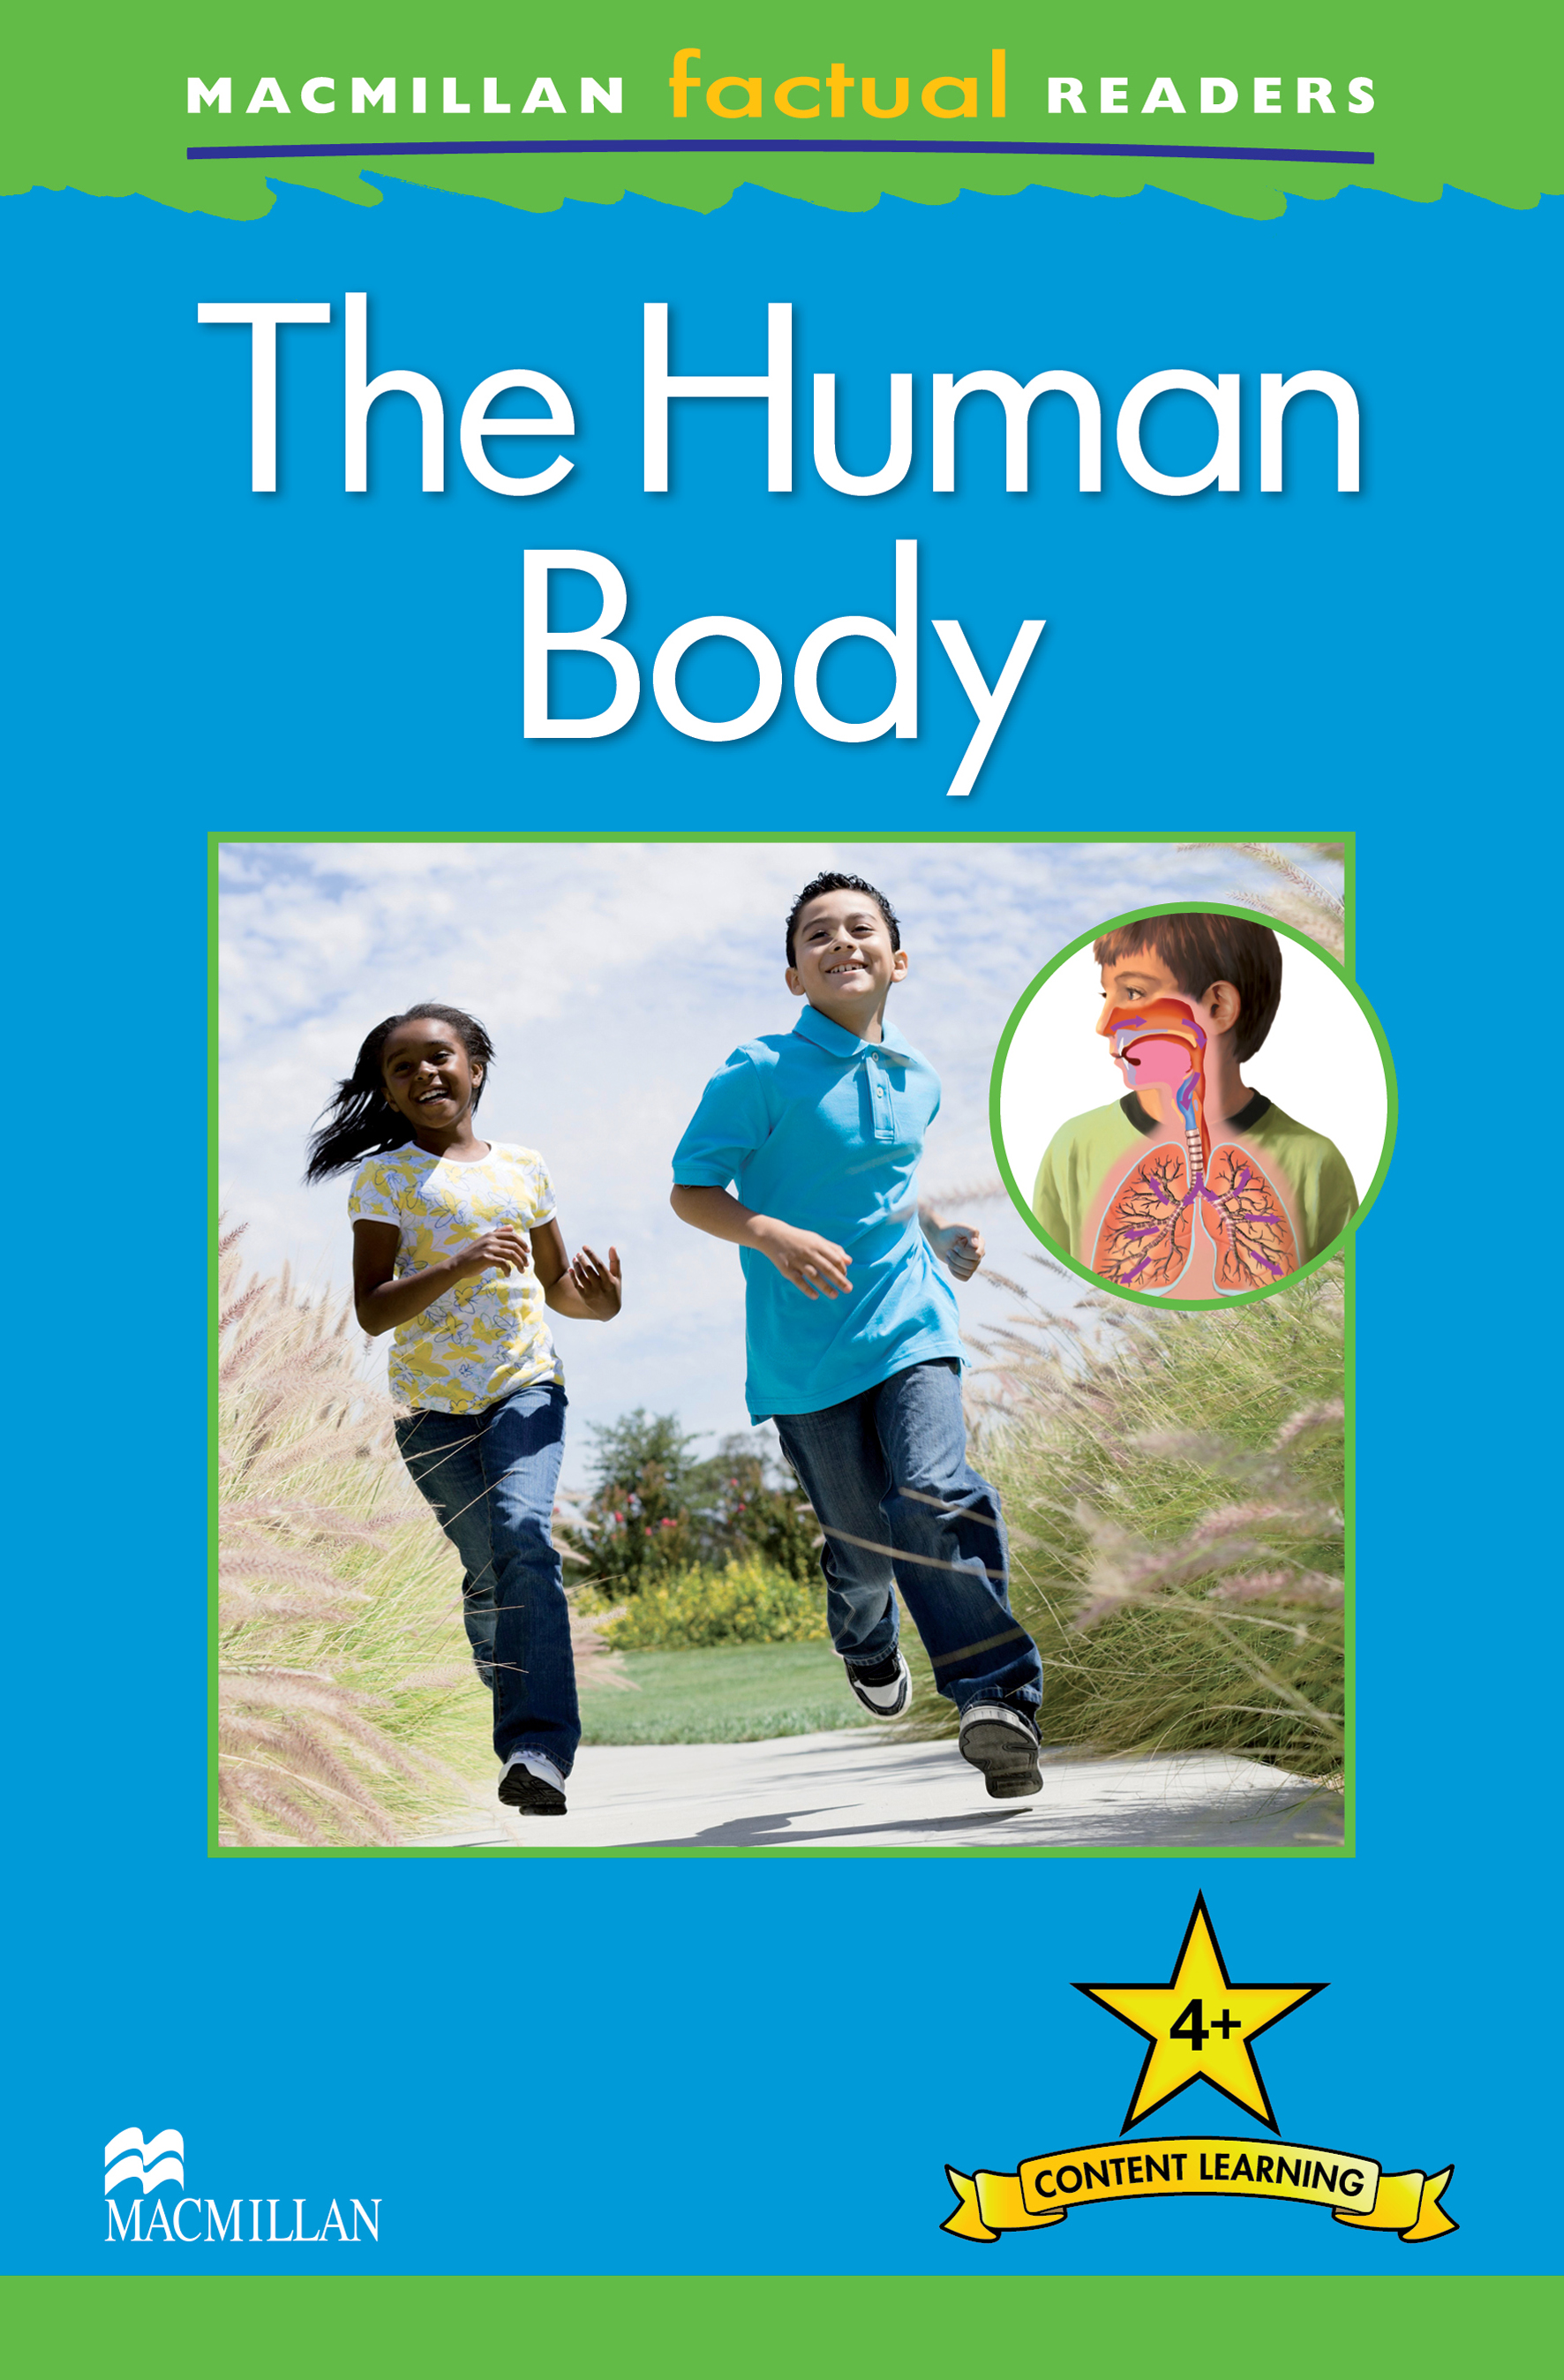 Macmillan Factual Readers: The Human Body